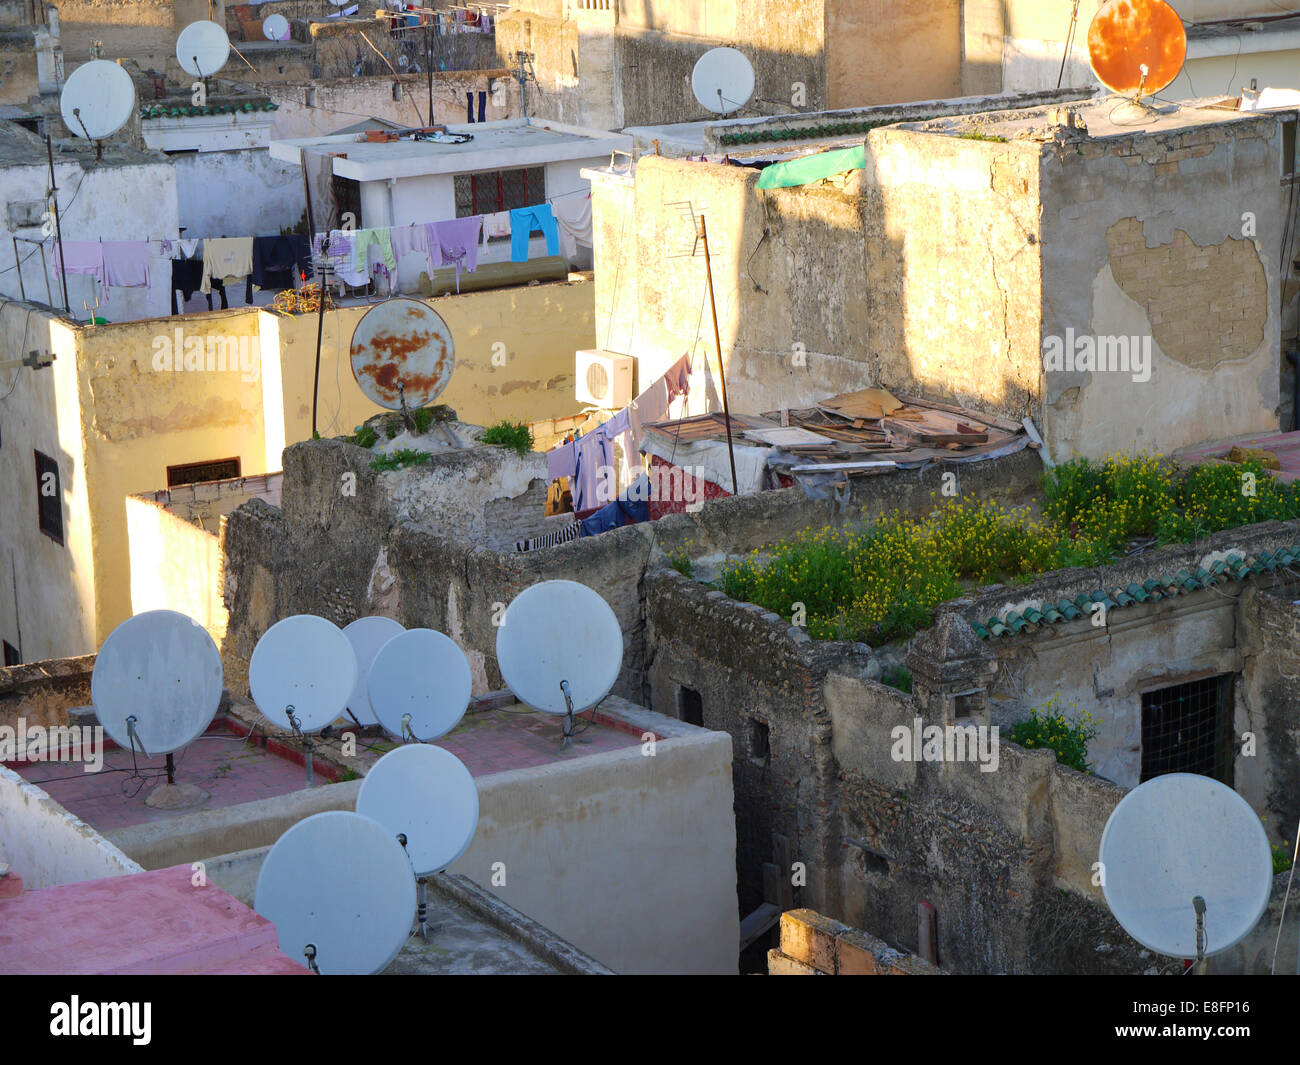 Satellite dishes on city rooftops, Morocco - Stock Image